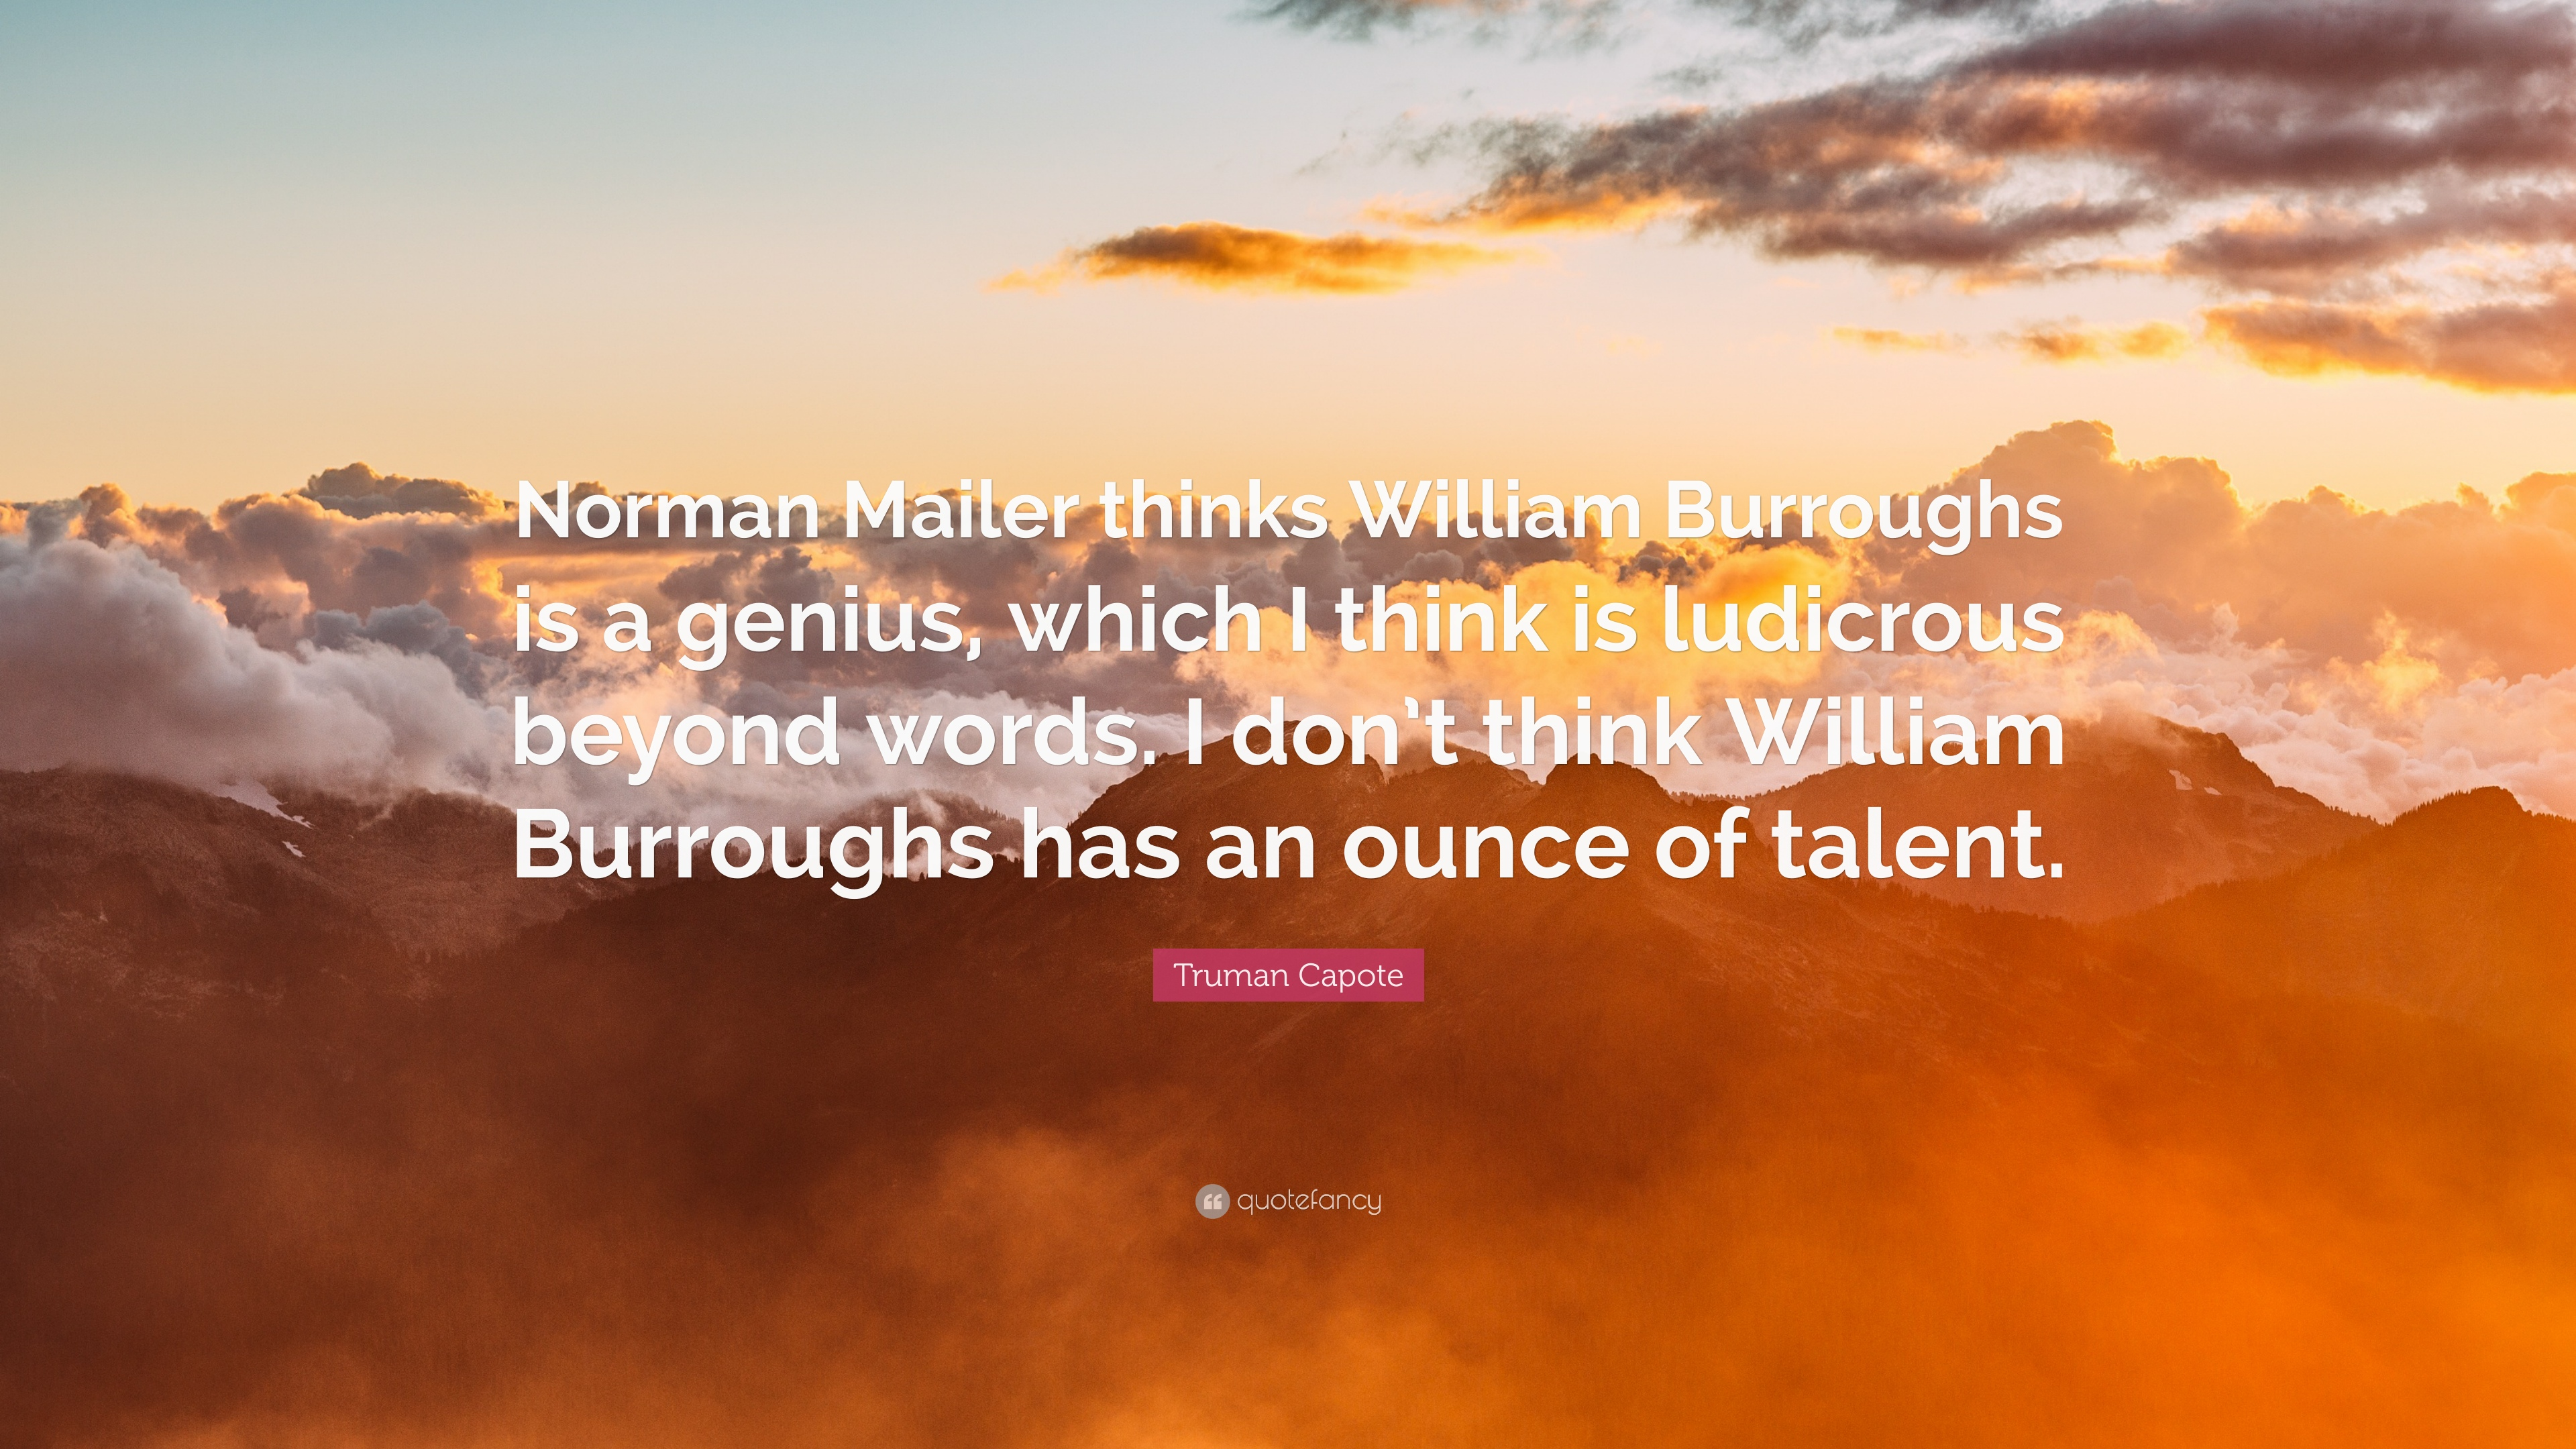 truman capote quote norman mailer thinks william burroughs is a truman capote quote norman mailer thinks william burroughs is a genius which i